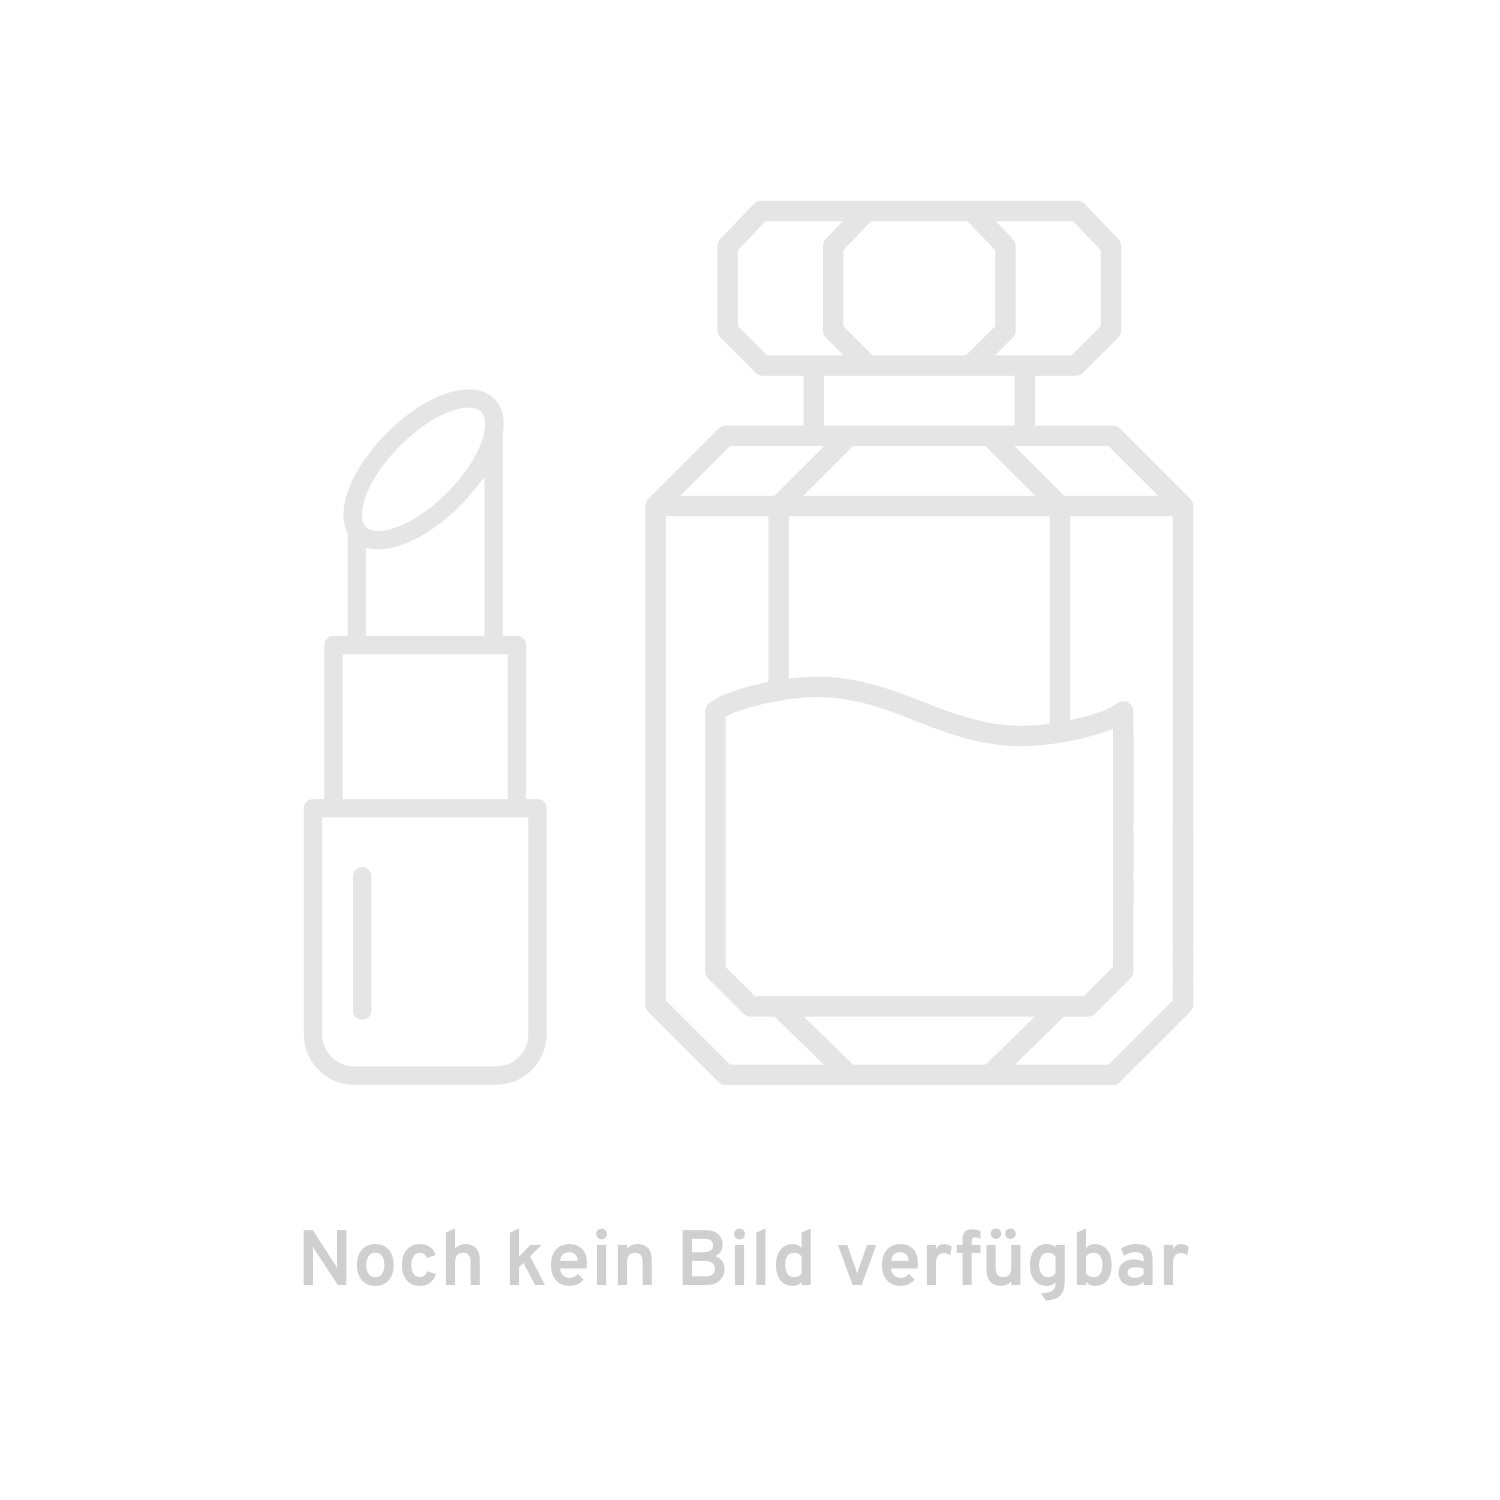 03 FACE OIL - Gesichtsöl